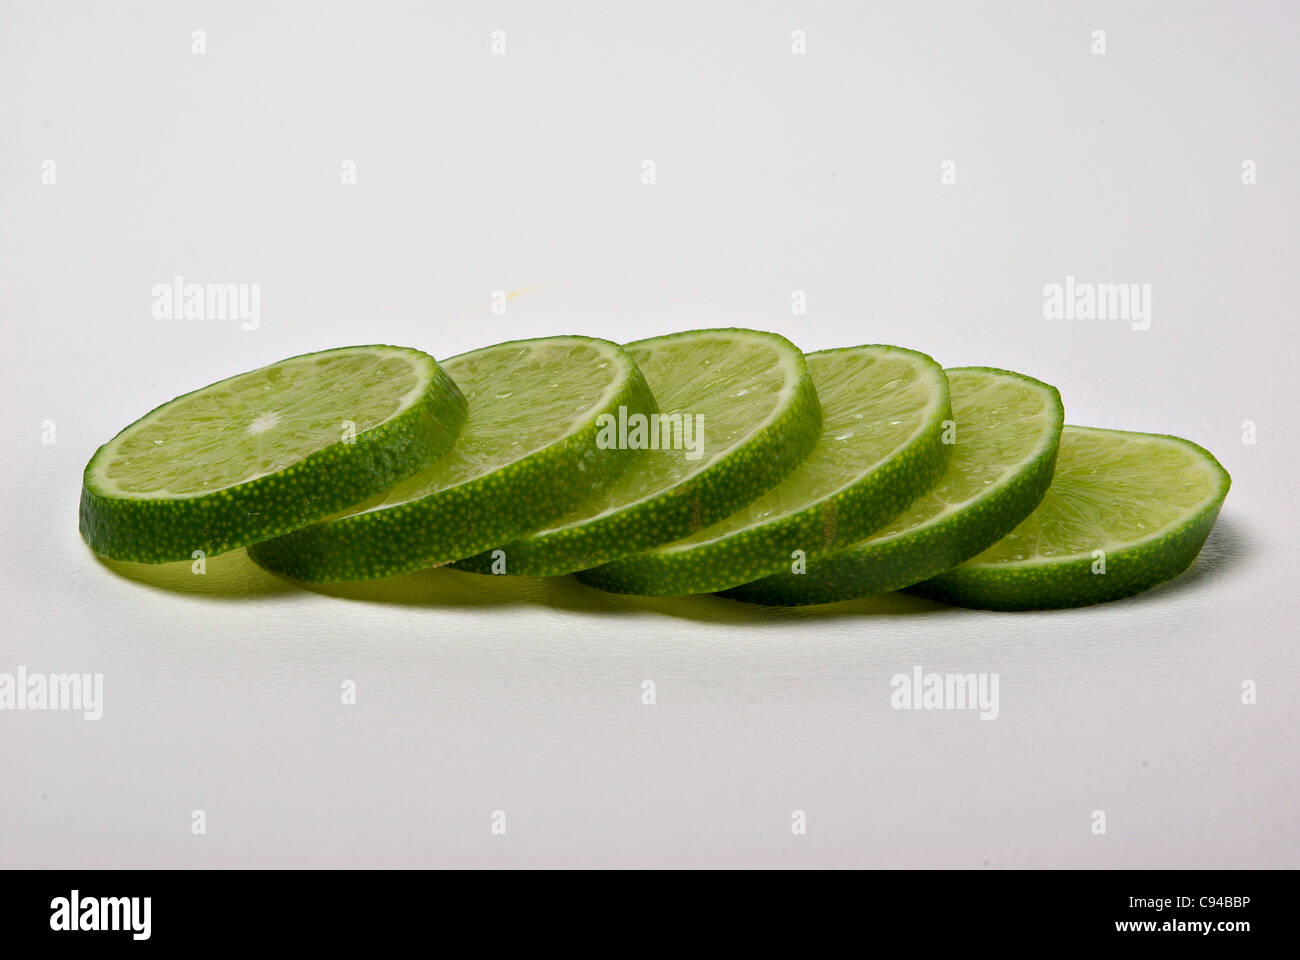 Lime slices lay on a plain background. - Stock Image